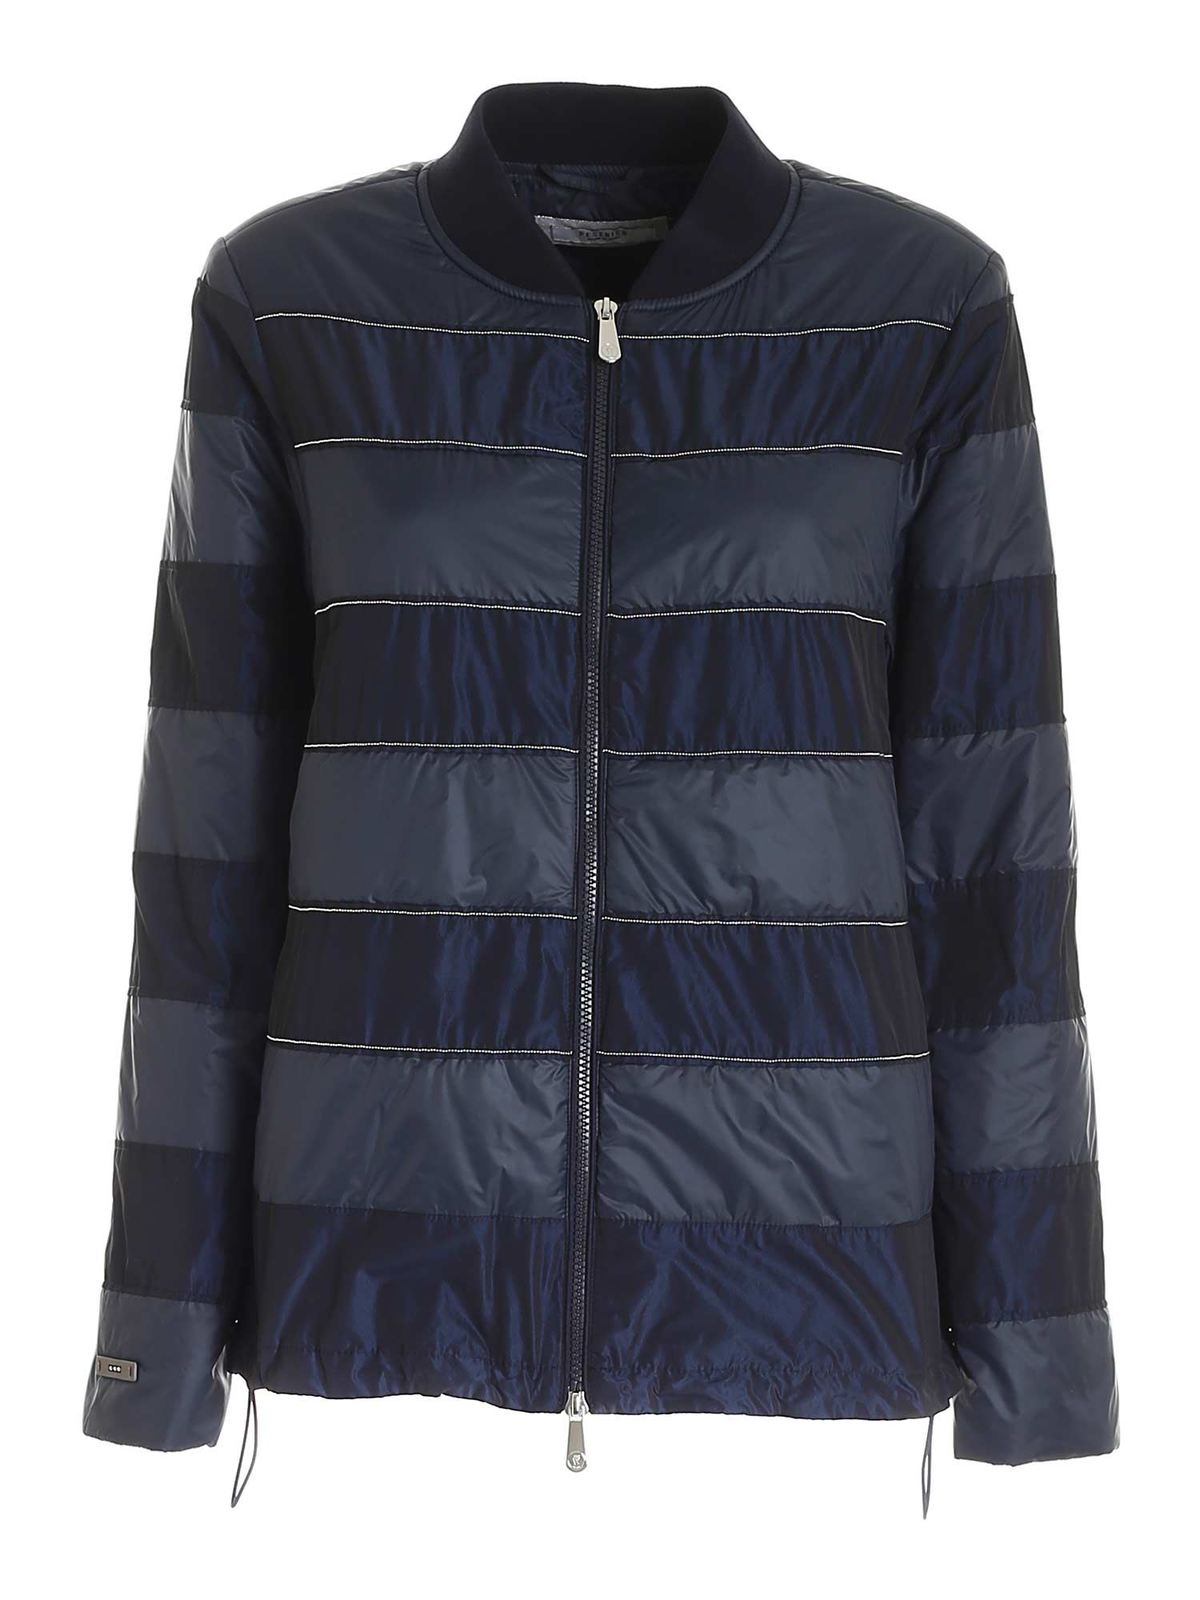 Peserico MICRO BEADS JACKET IN BLUE